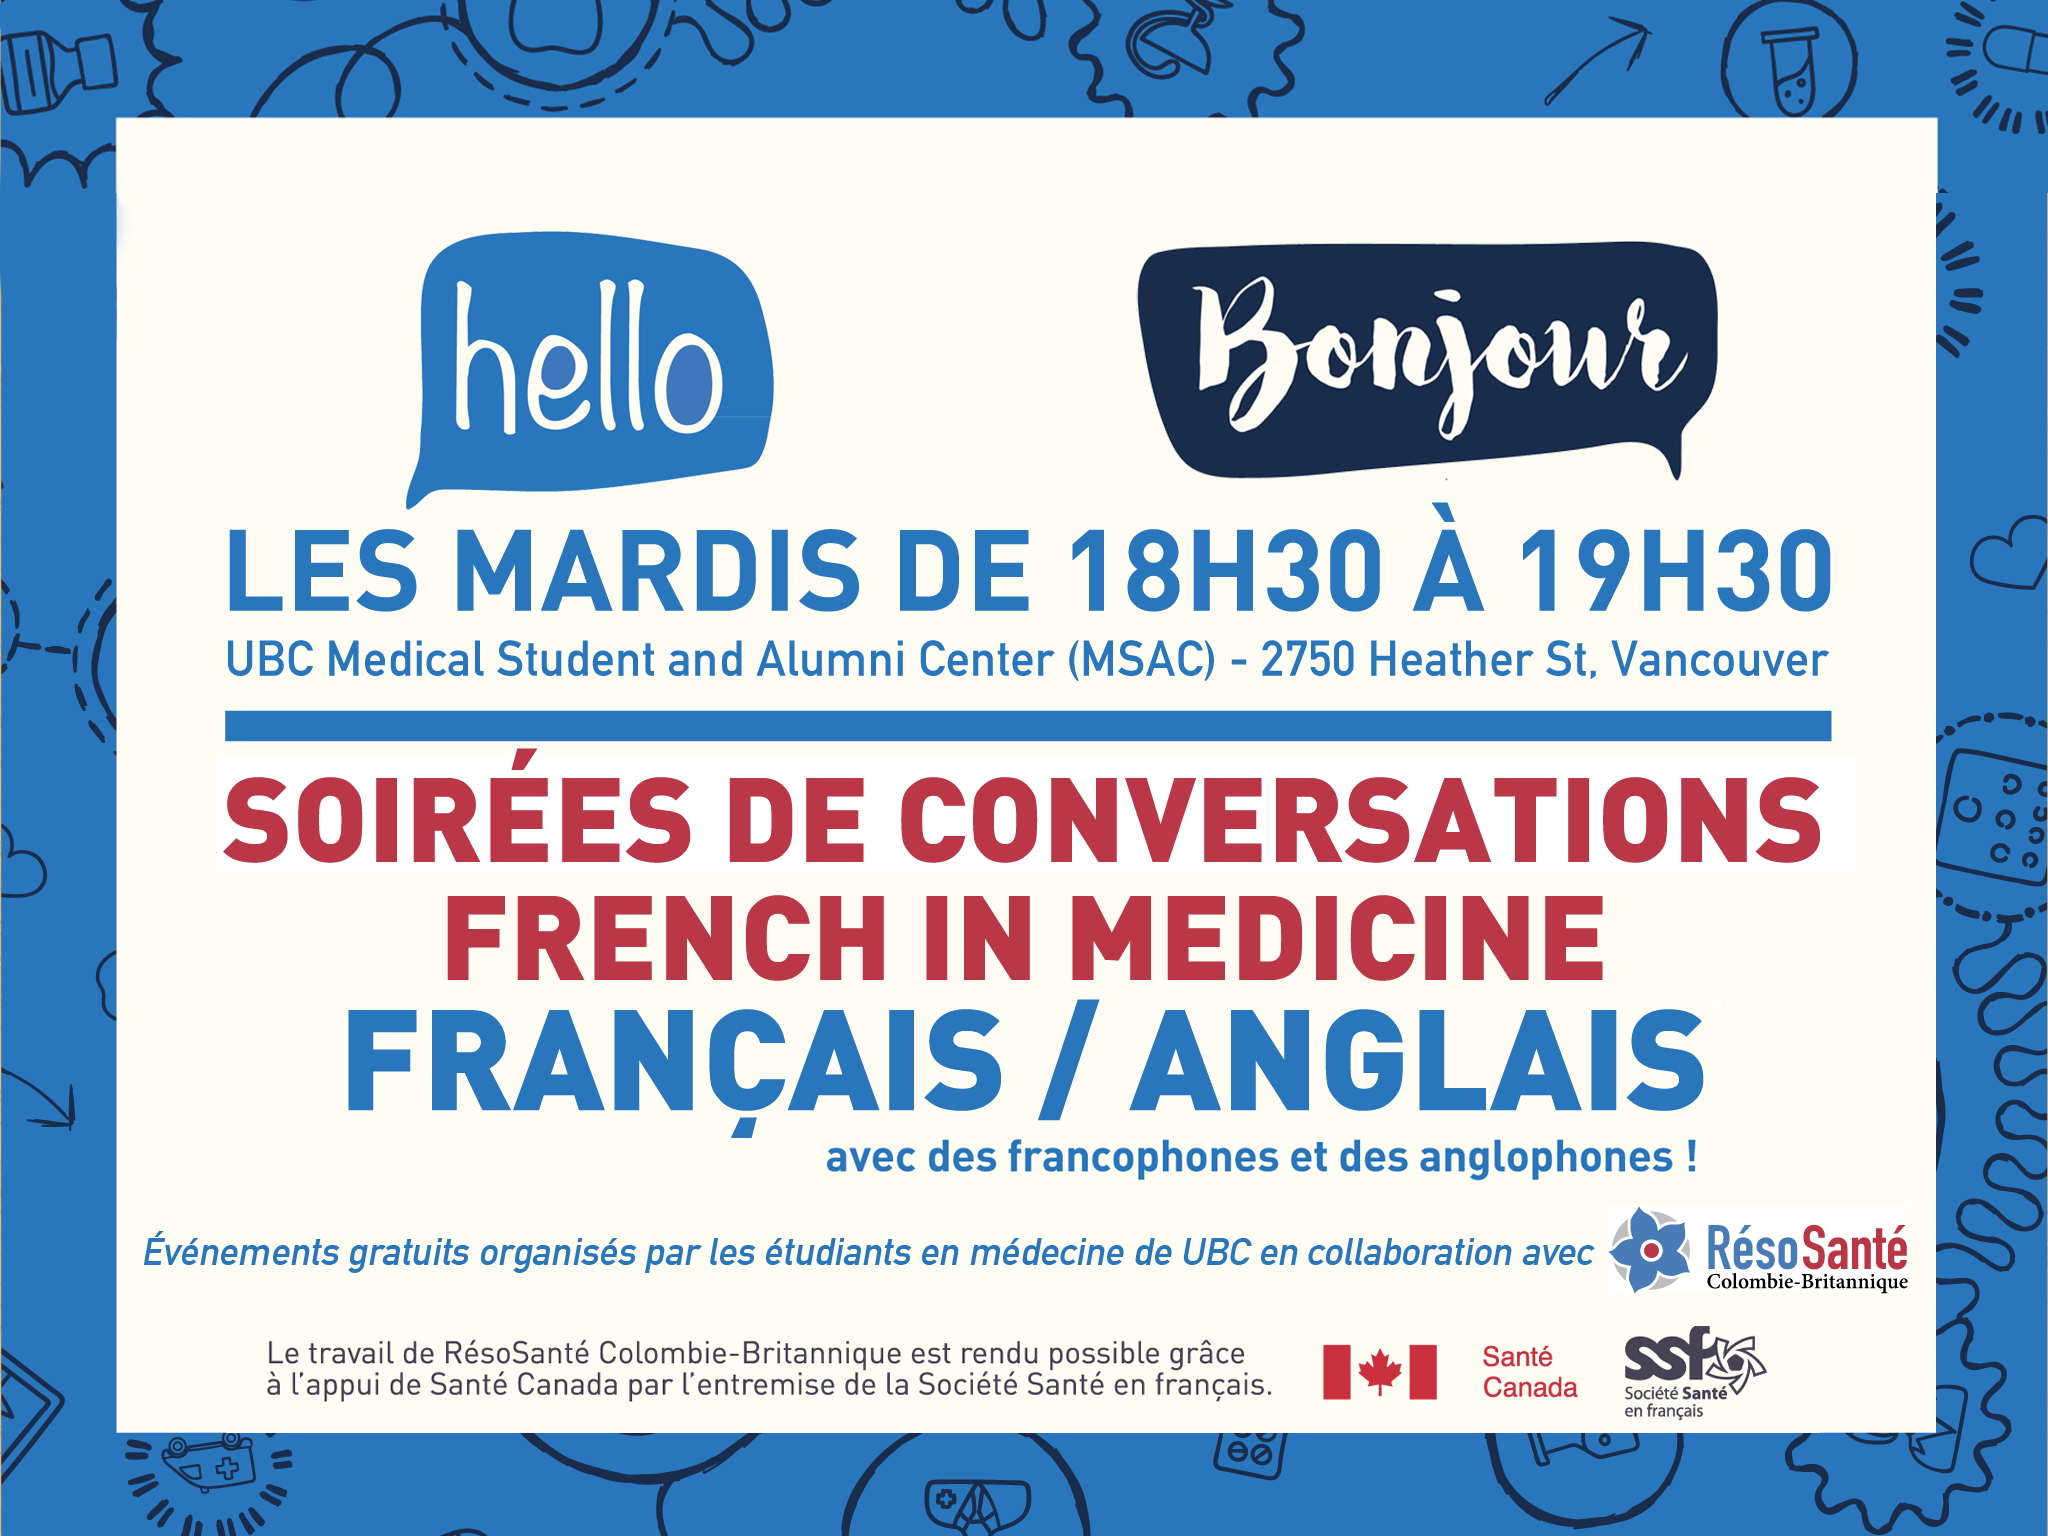 Soirée de conversation French in Medicine